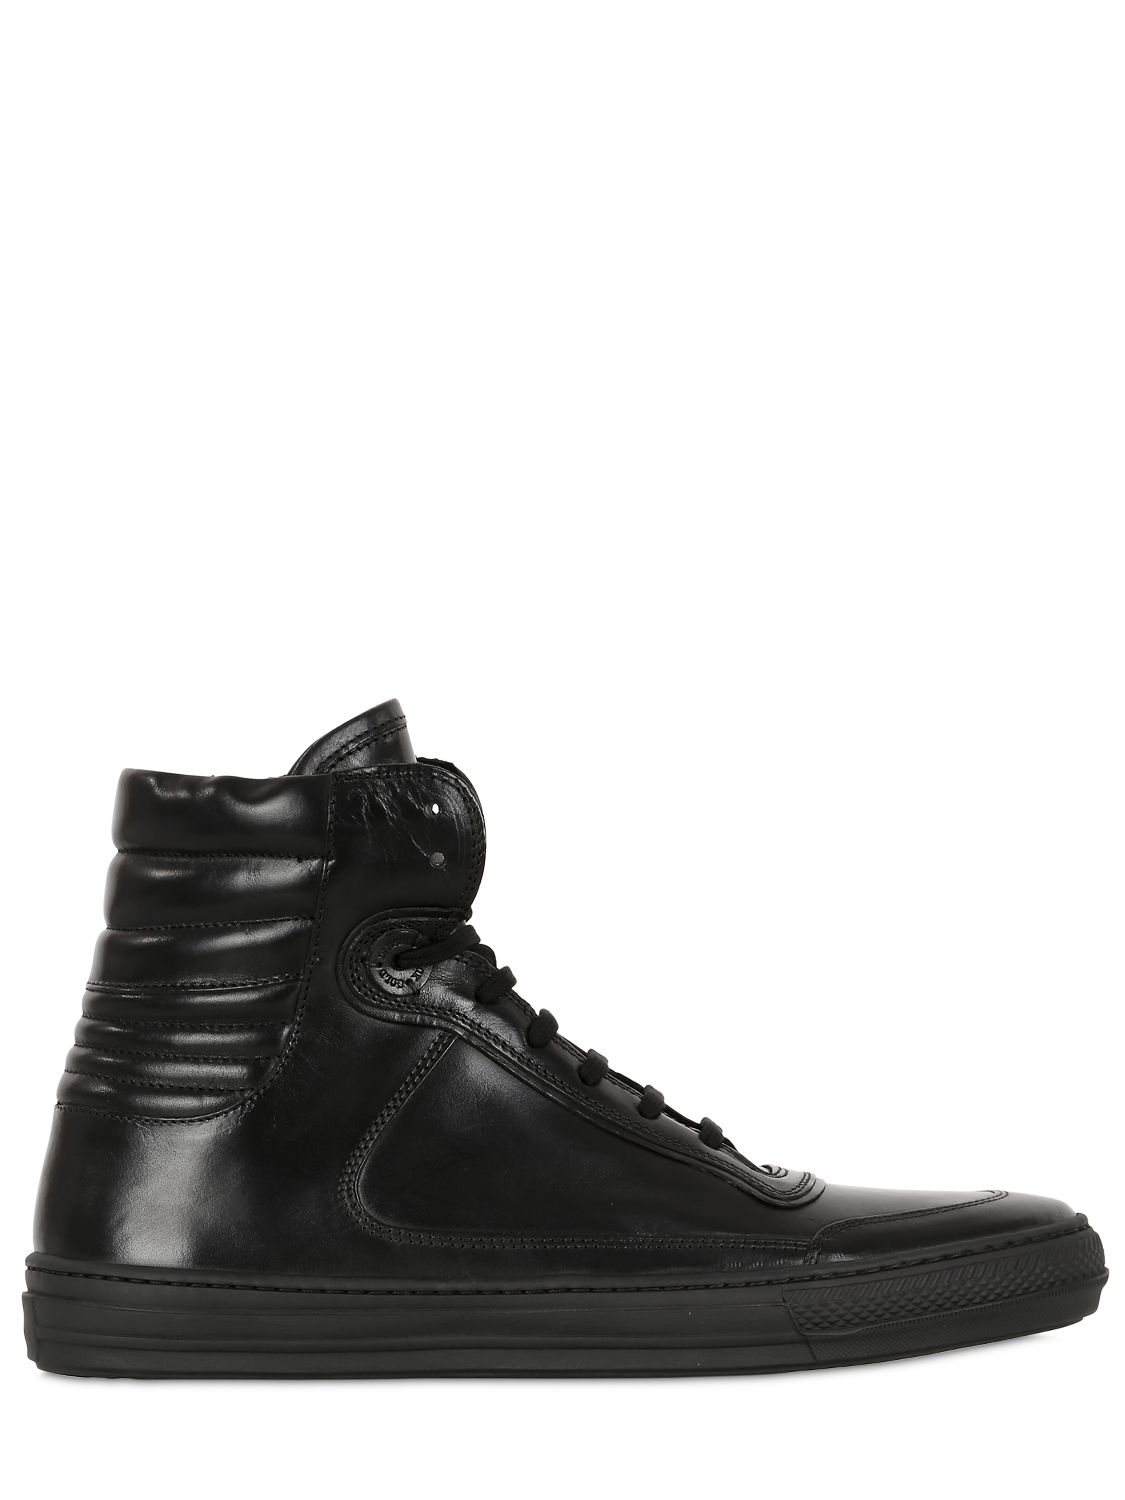 Diesel Black Gold Smooth Leather High